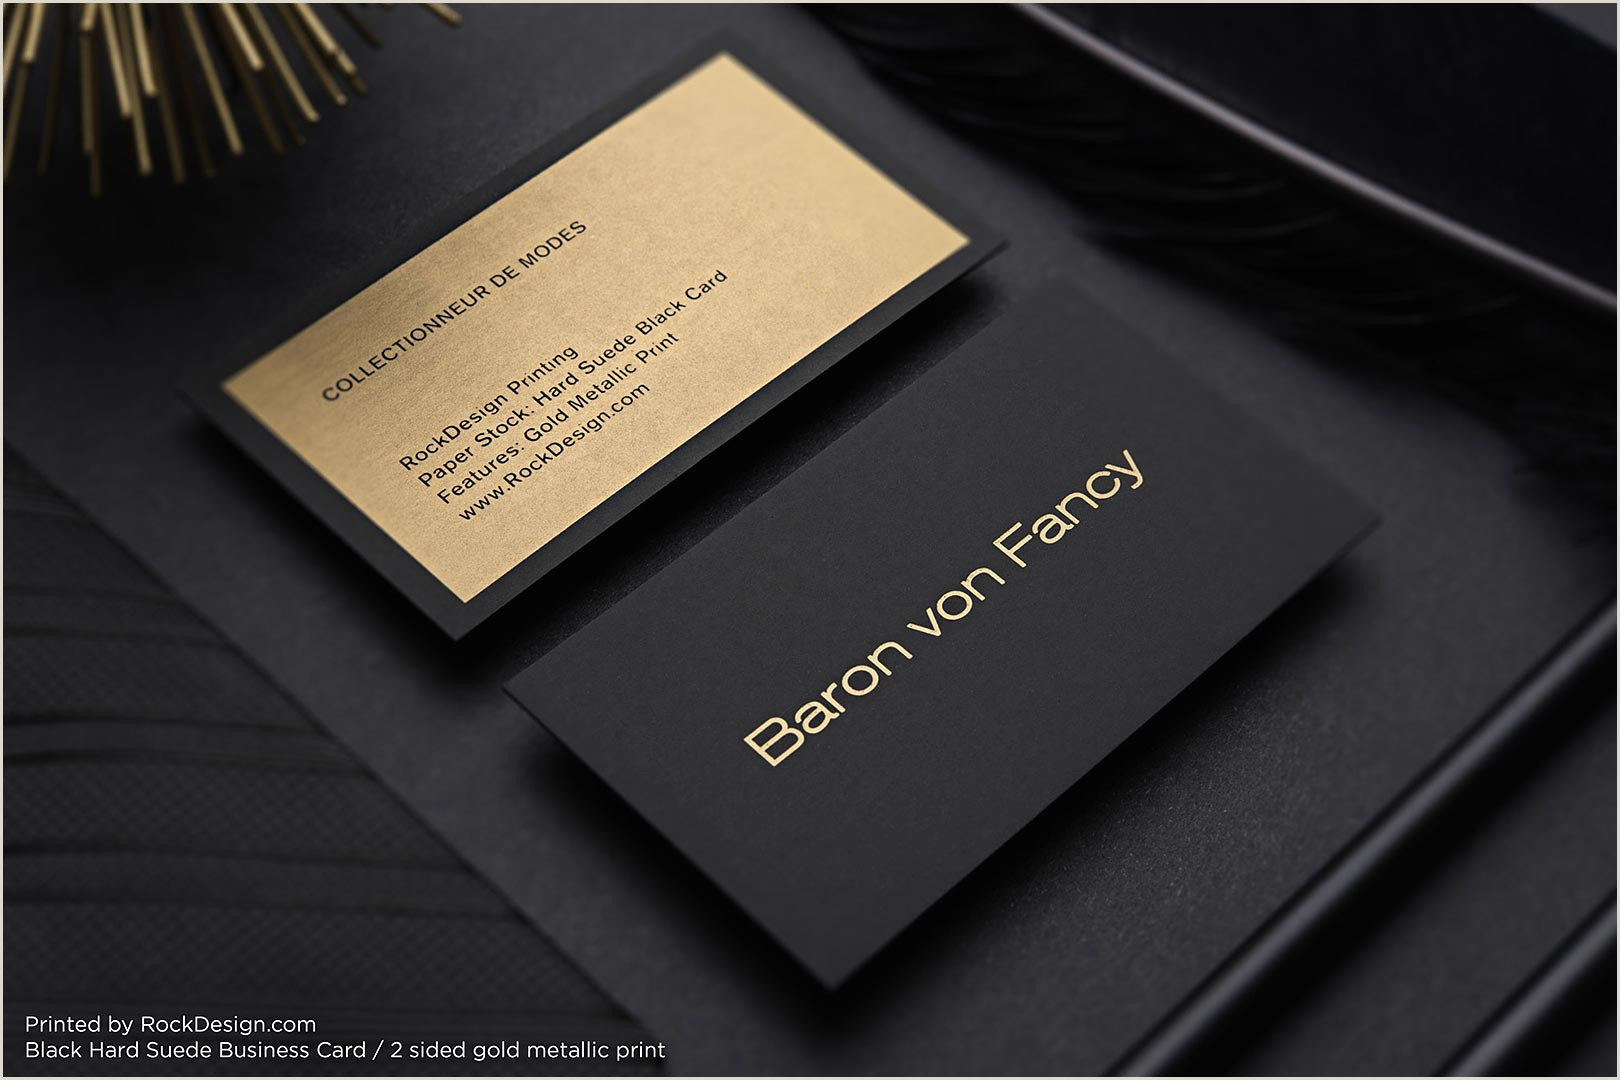 Classic Business Cards Design Over 100 Free Online Luxury Business Card Templates